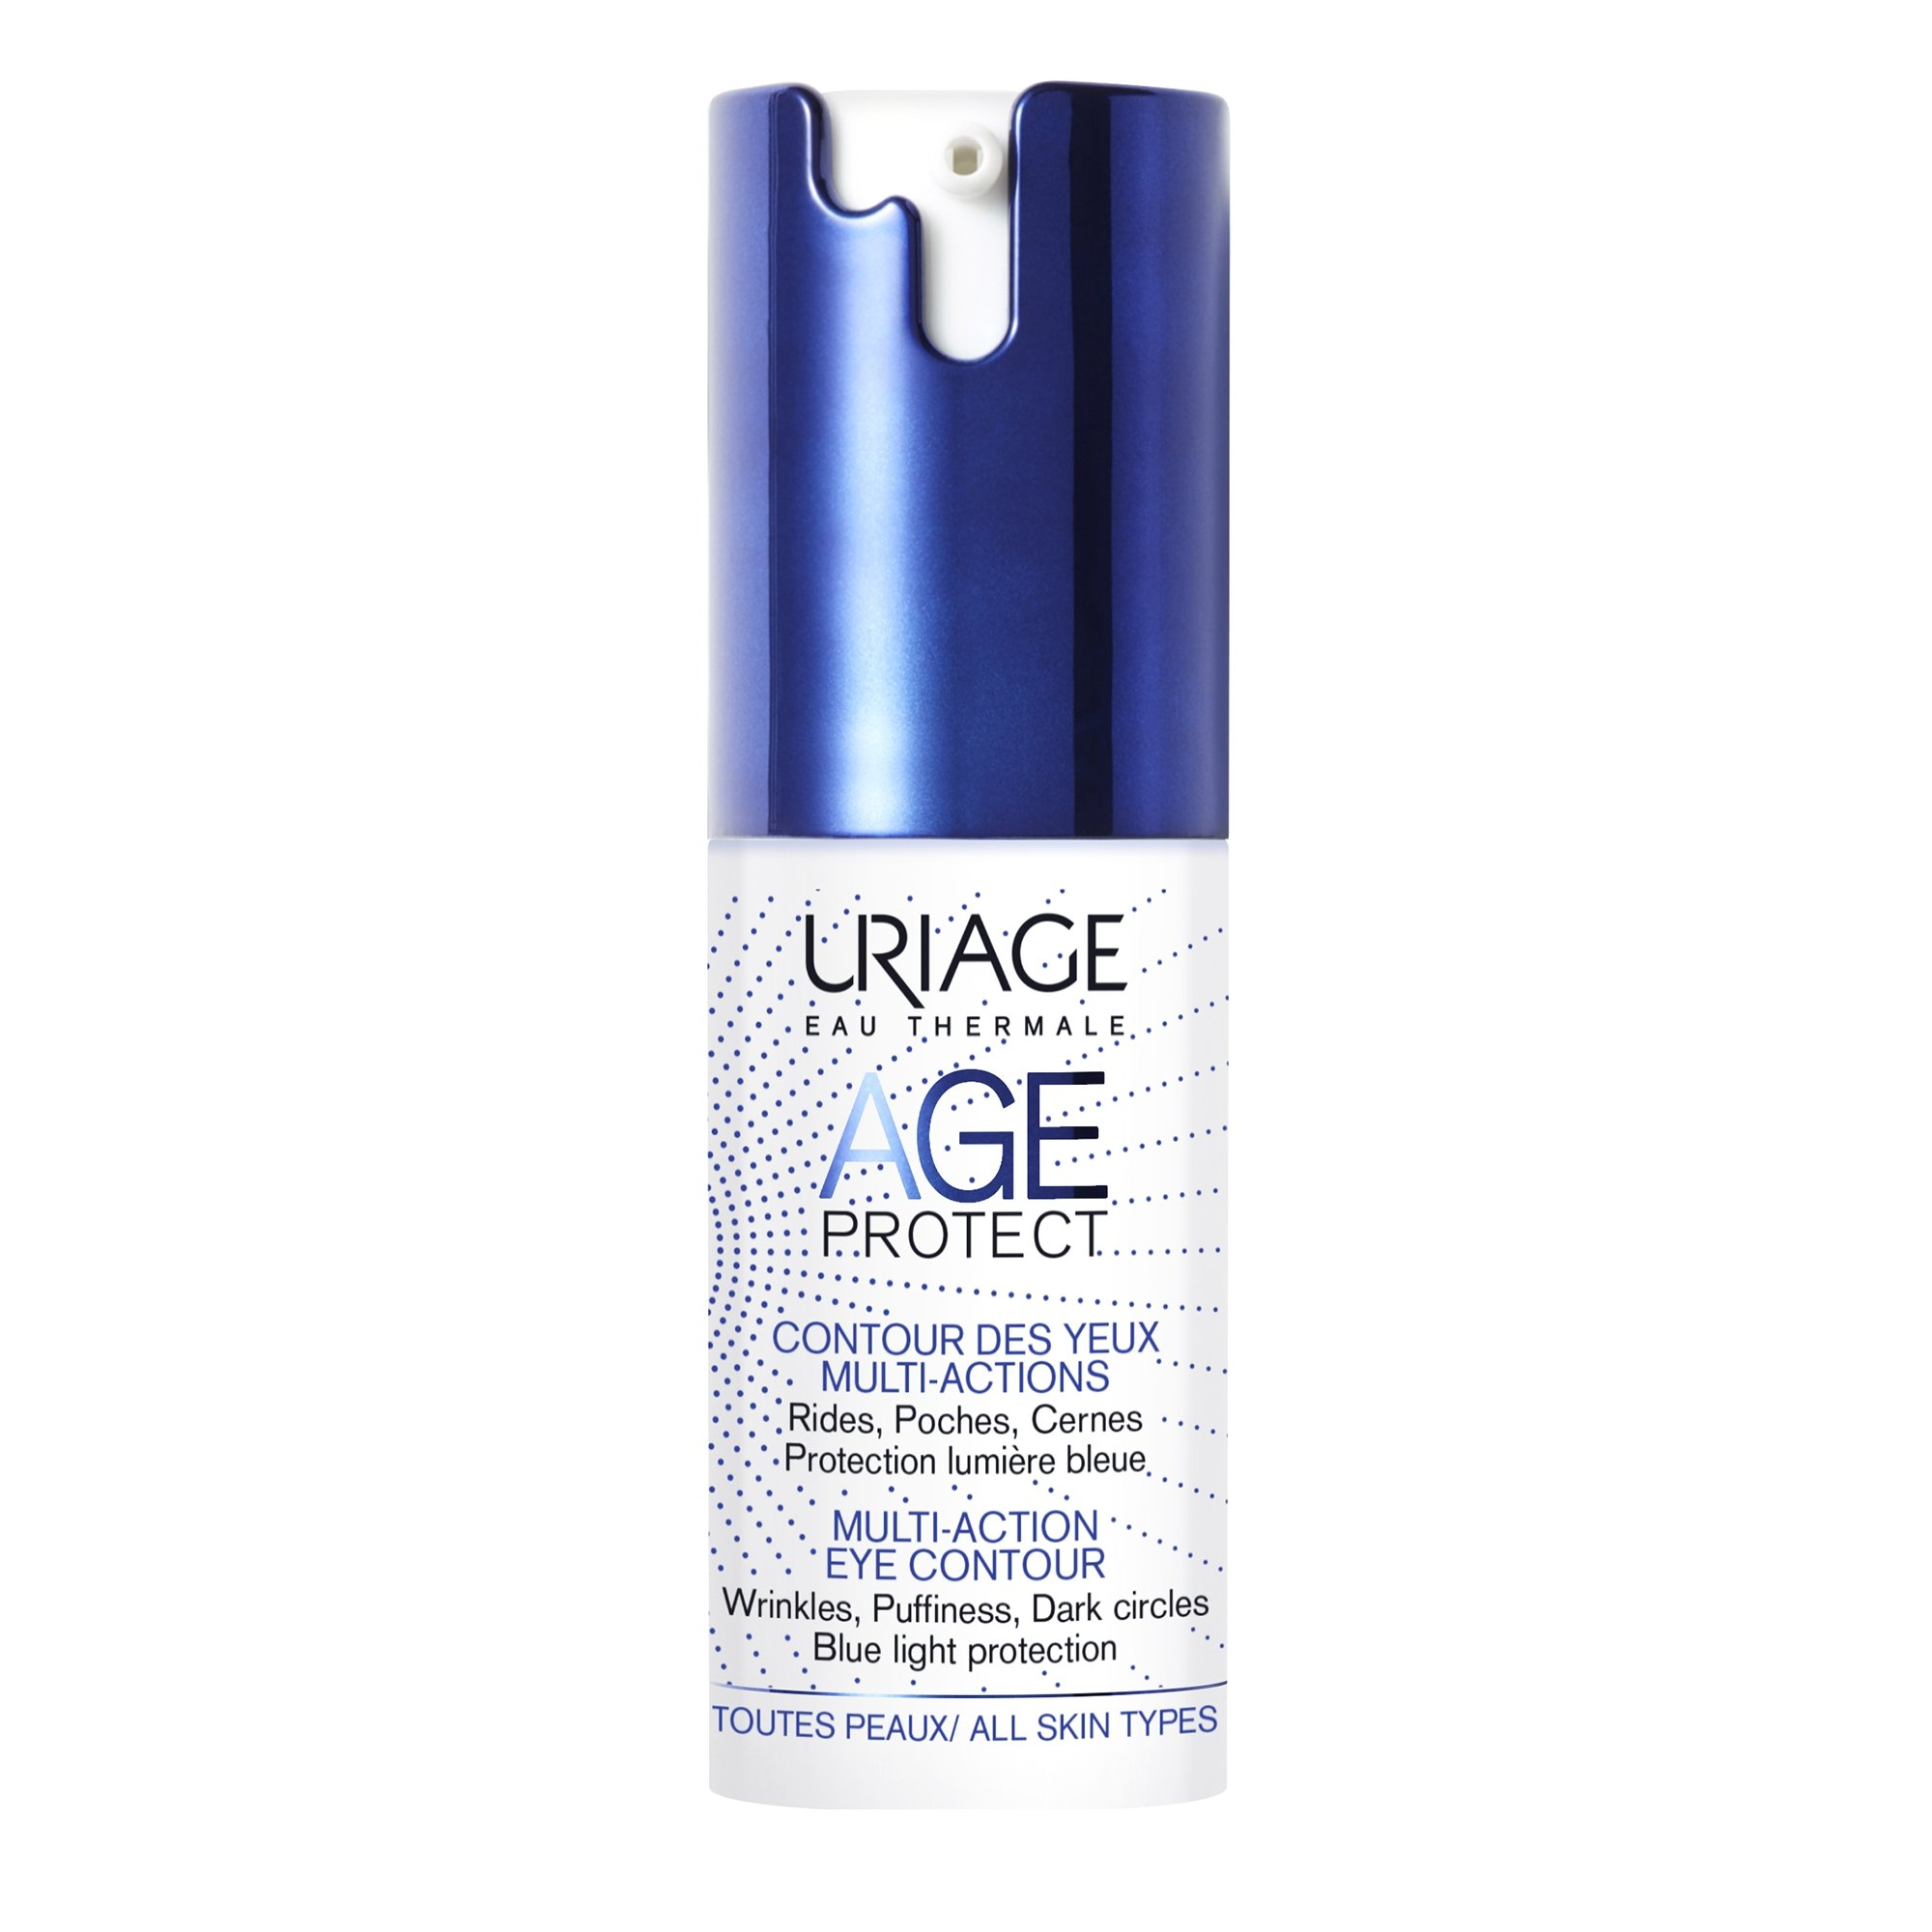 Uriage Eau Thermale Age Protect Multi Action Eye Contour Διορθώνει τα Σημάδια Γήρανσης 15ml